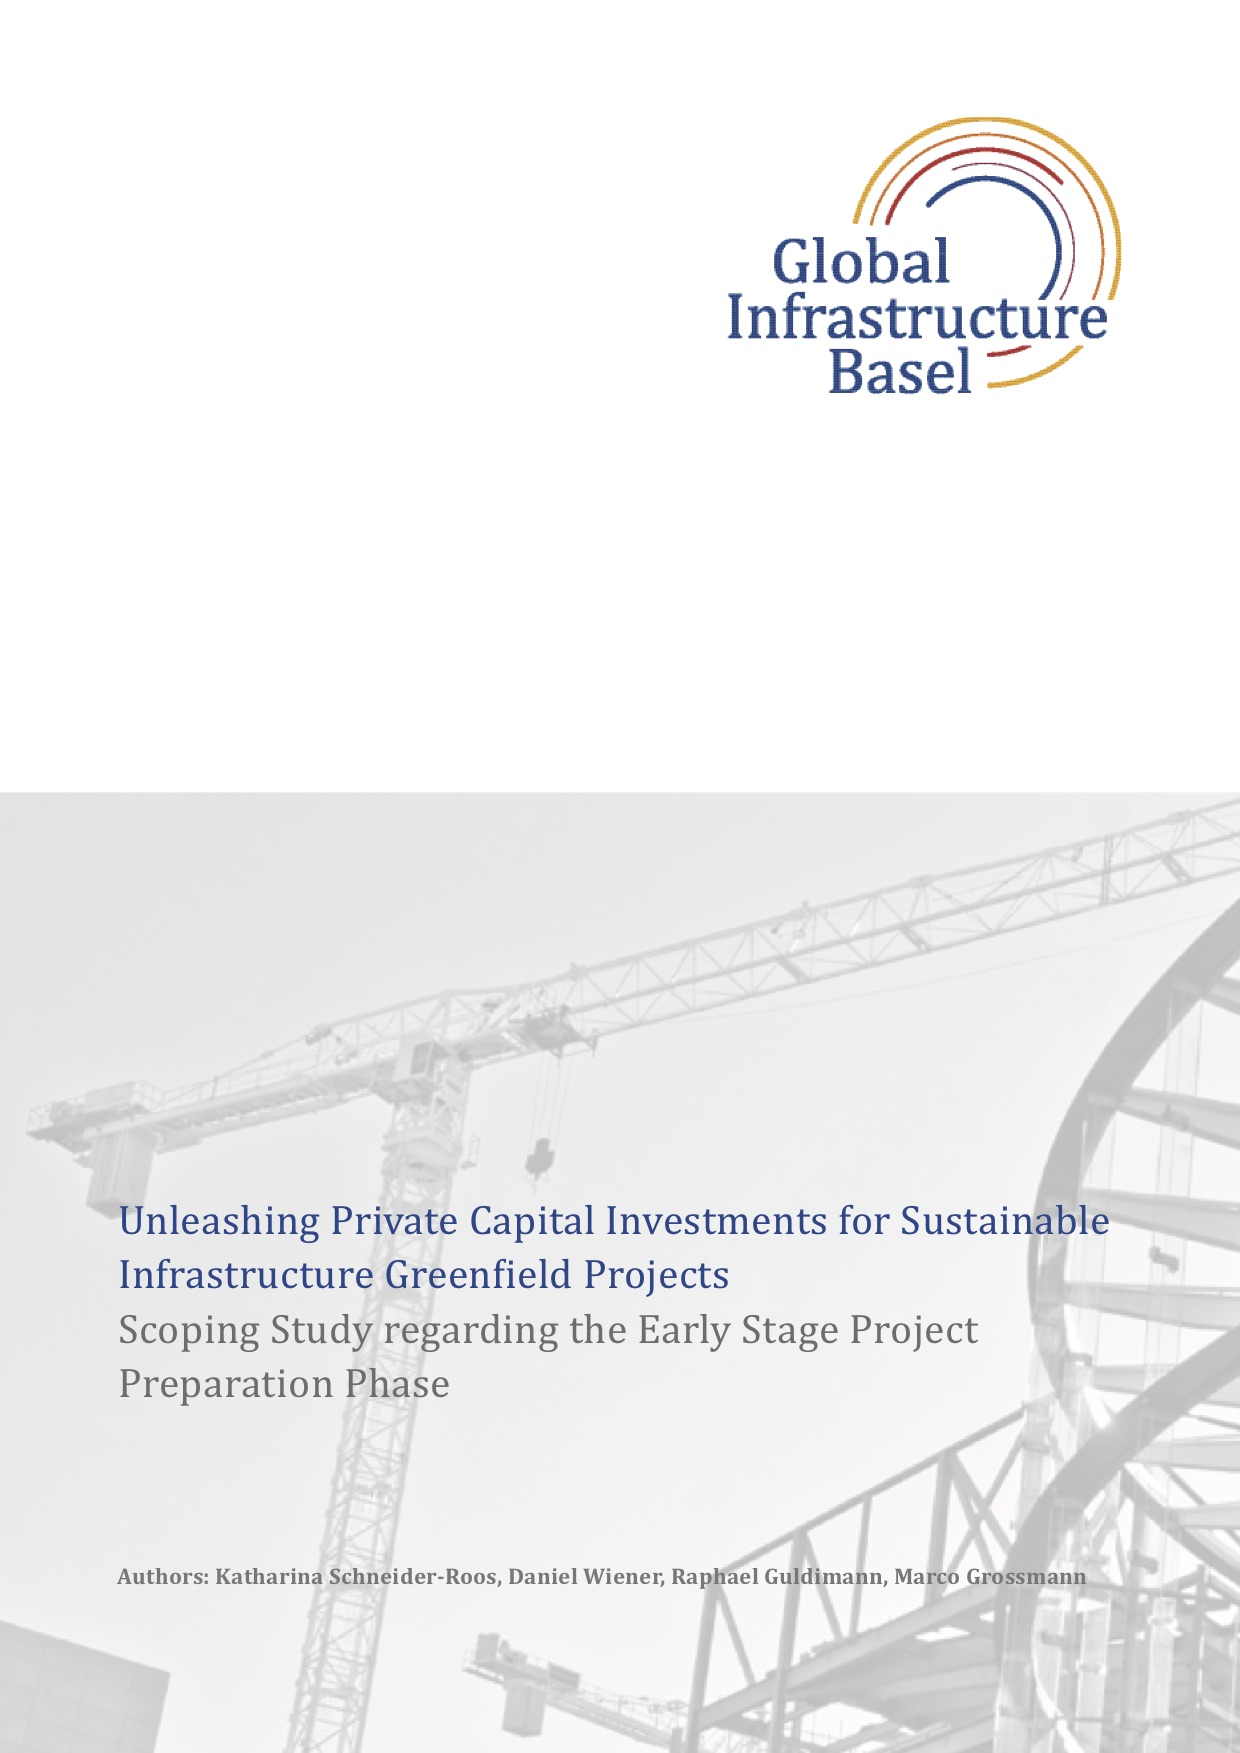 Unleashing Private Capital Investments for Sustainable Infrastructure Greenfield Projects